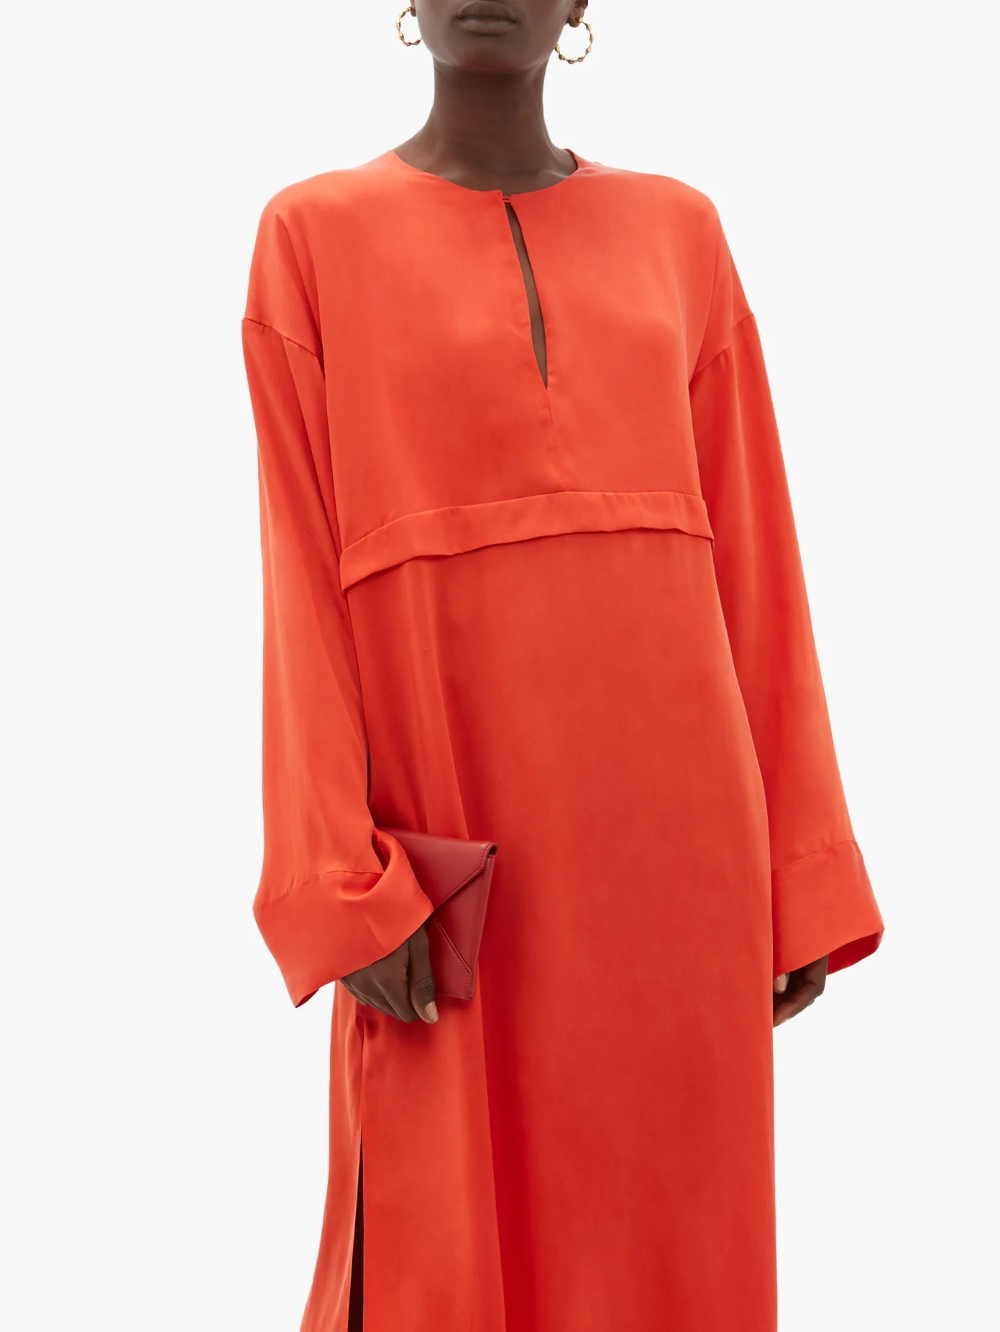 Green Oversized Maxi Satin Shirt with Long Sleeves and Pleats Loose Fitting Blouse